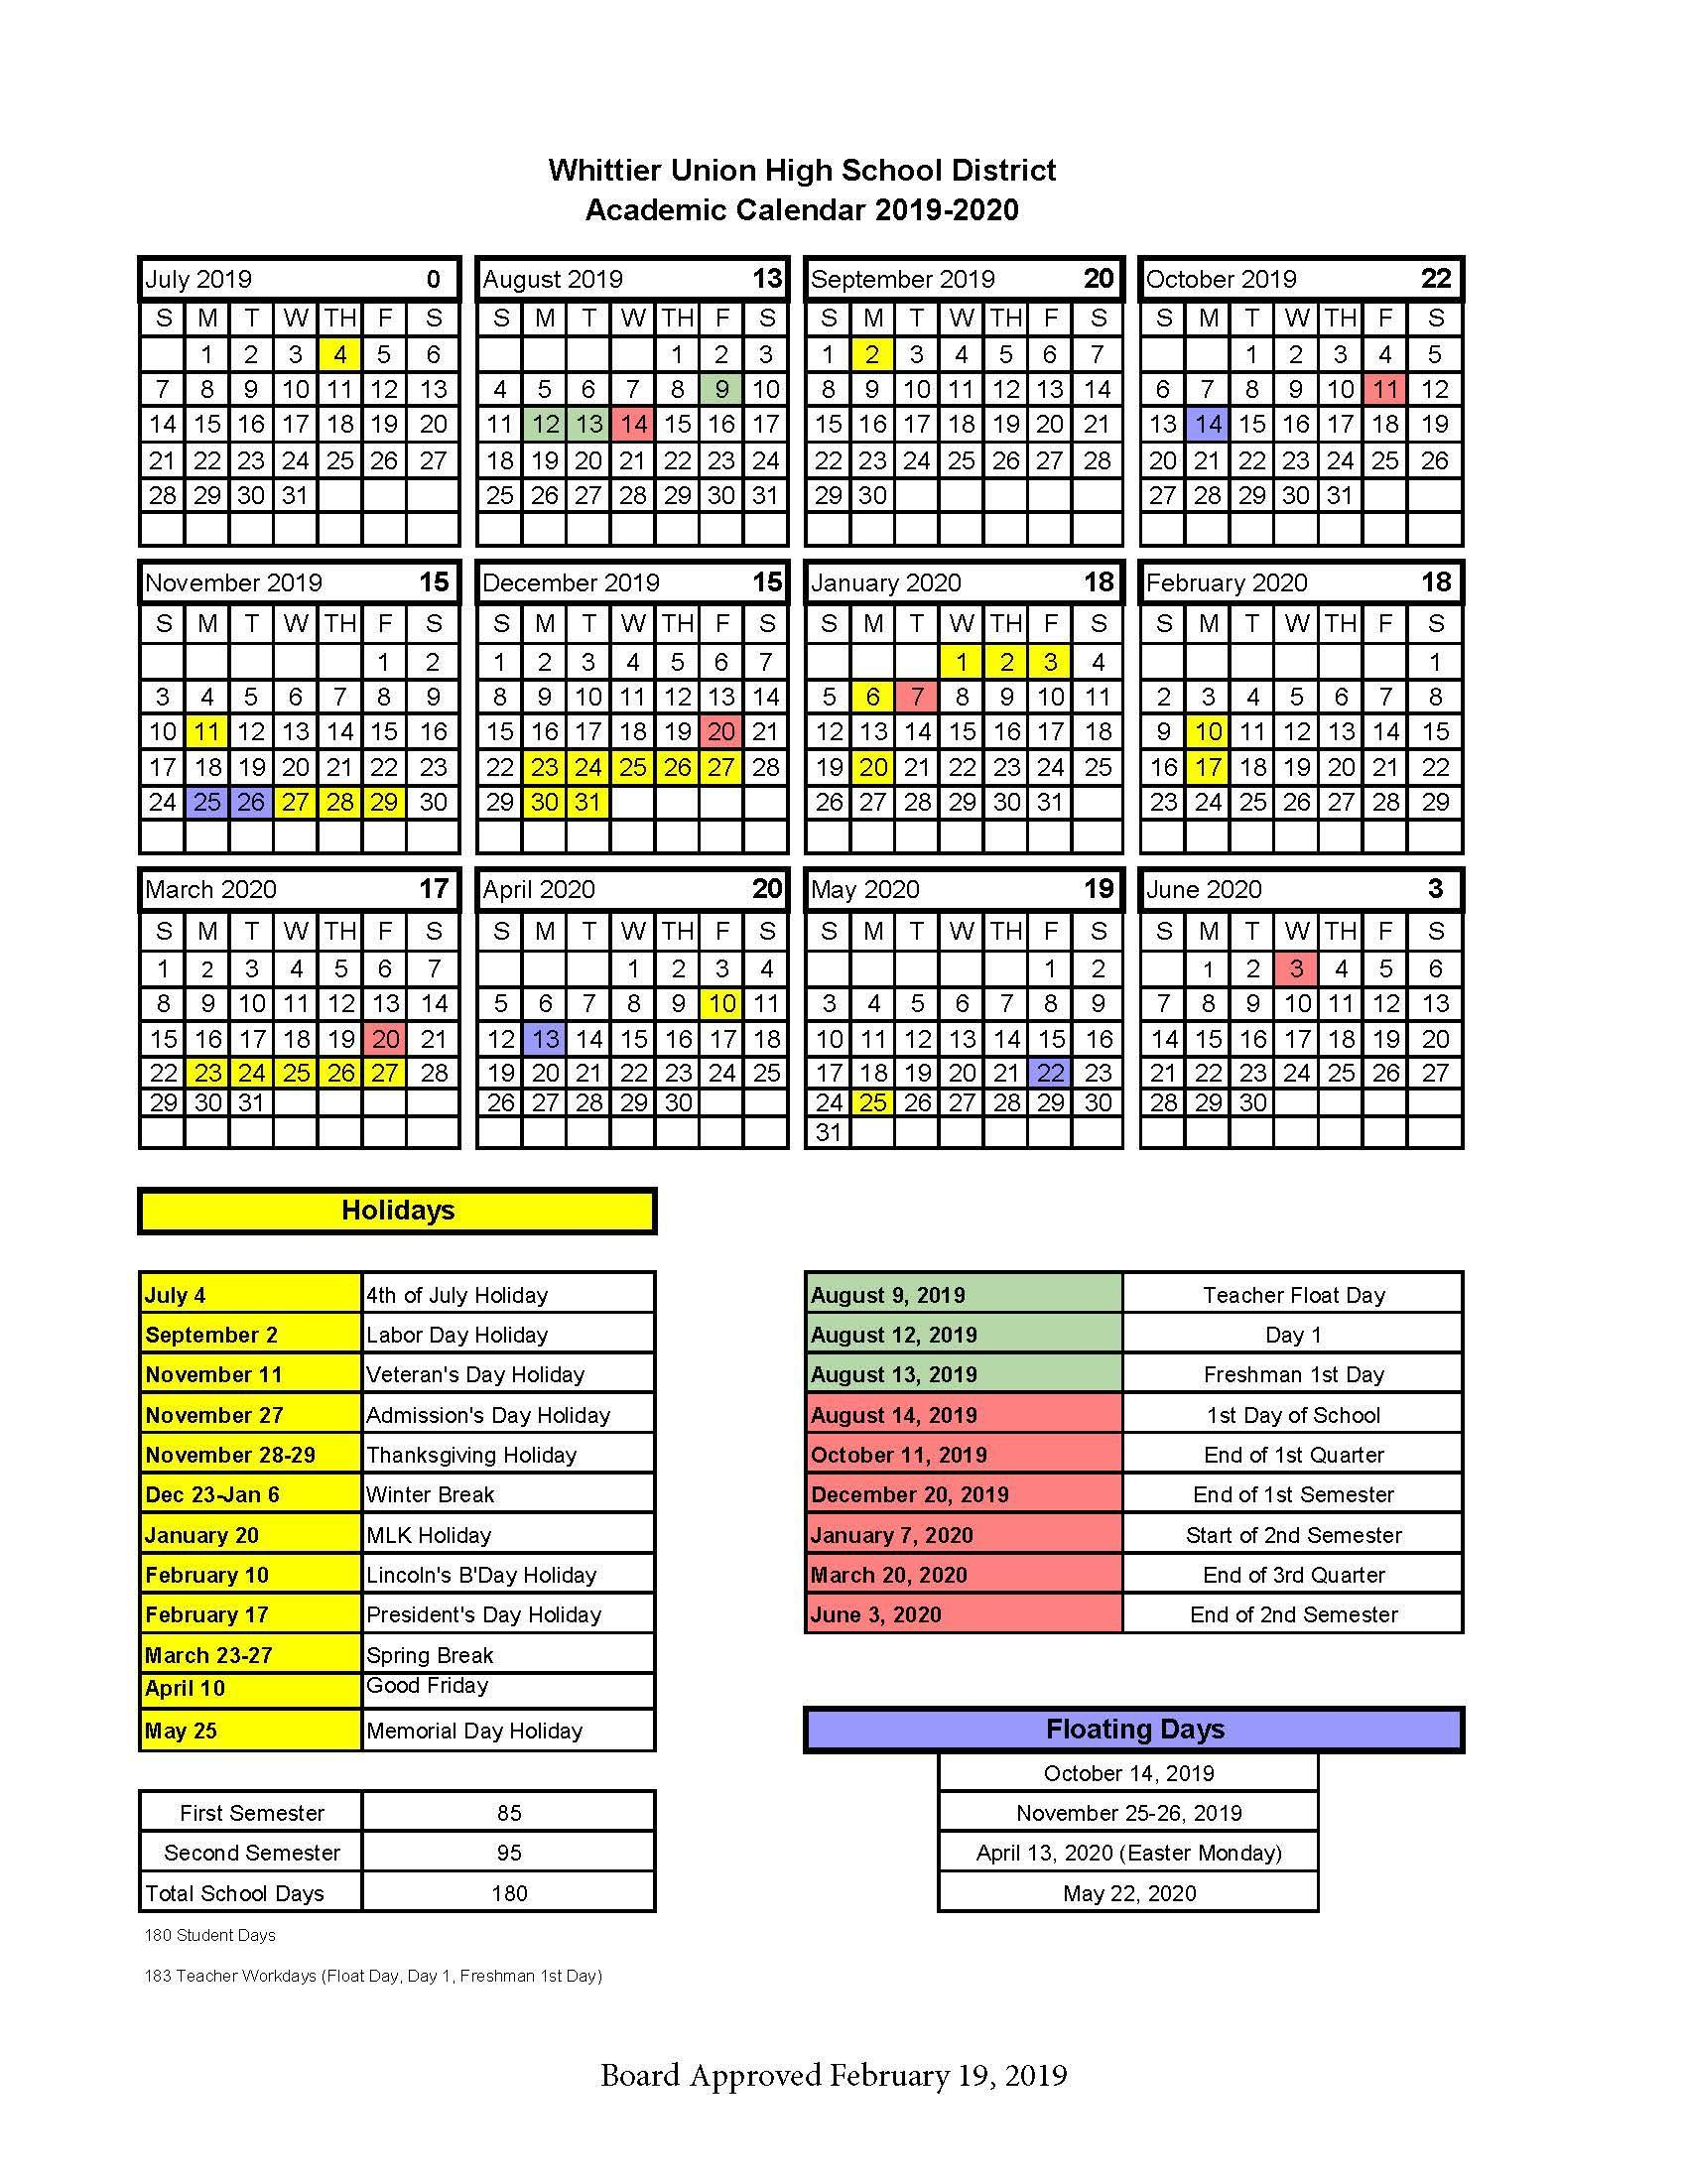 Spring 2020 Academic Calendar.Wuhsd Academic Calendars District Information Whittier Union